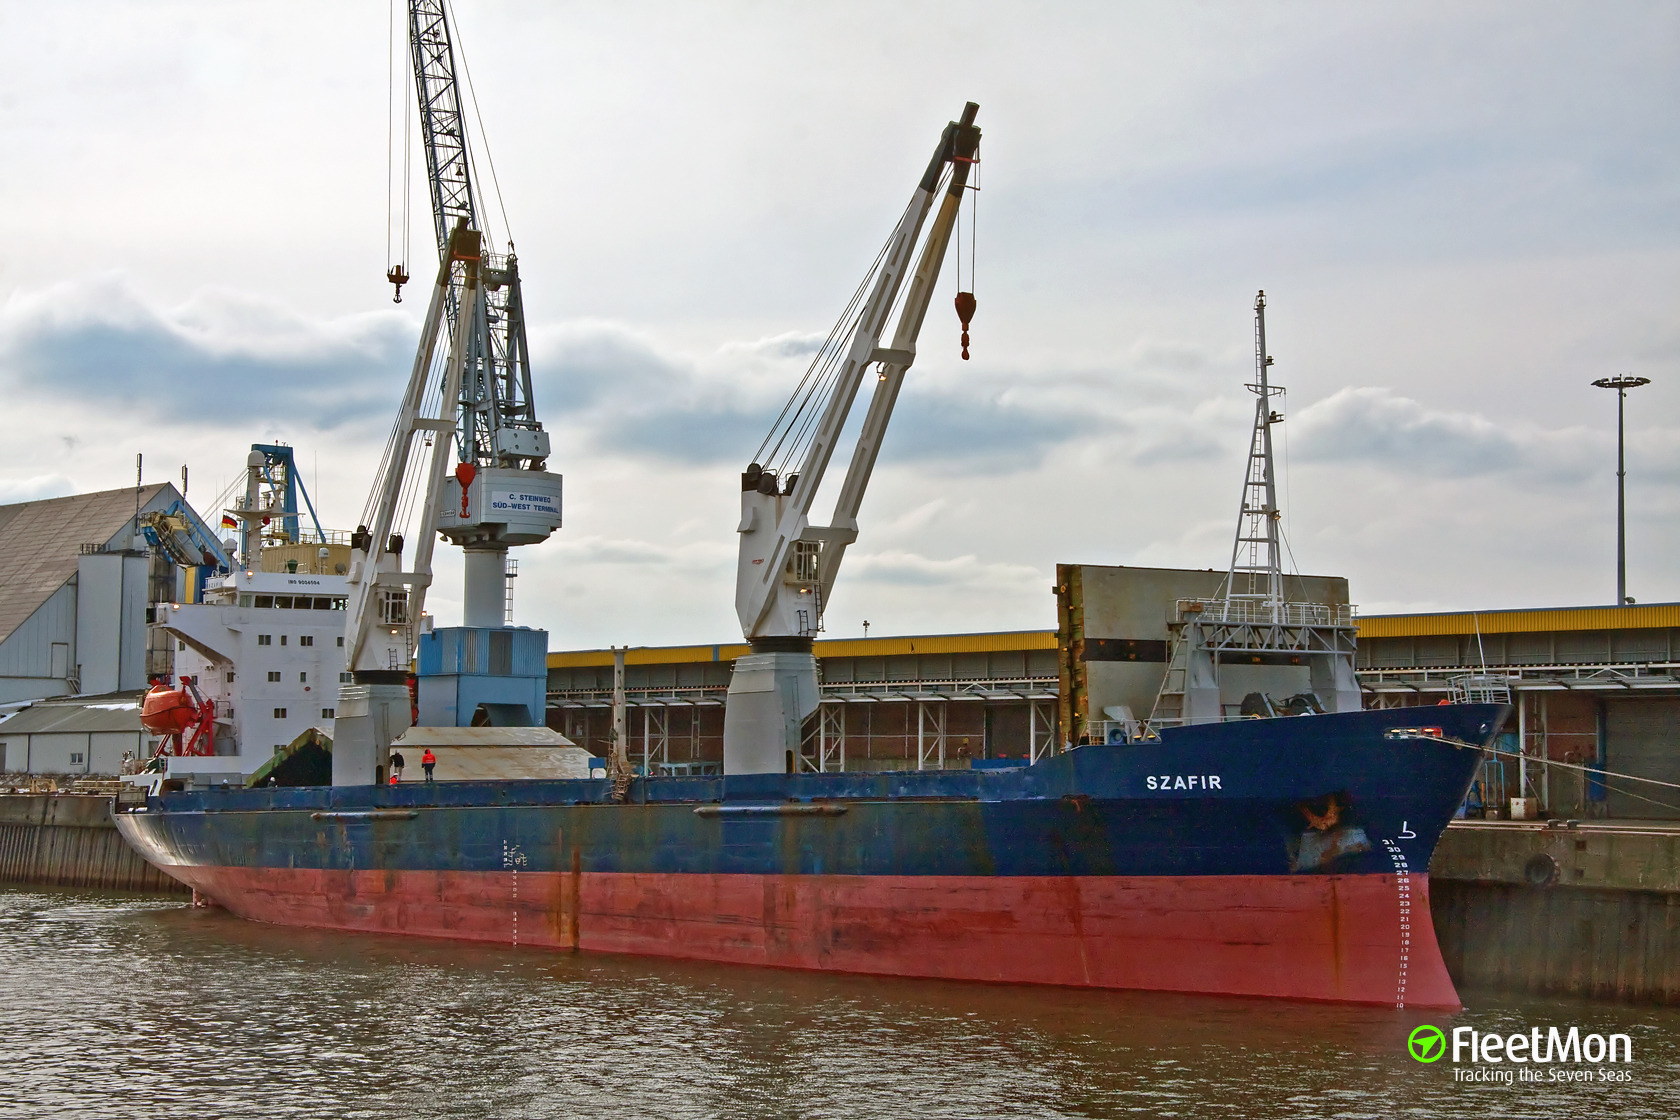 Polish freighter SZAFIR attacked, 5 crew including Master hijacked